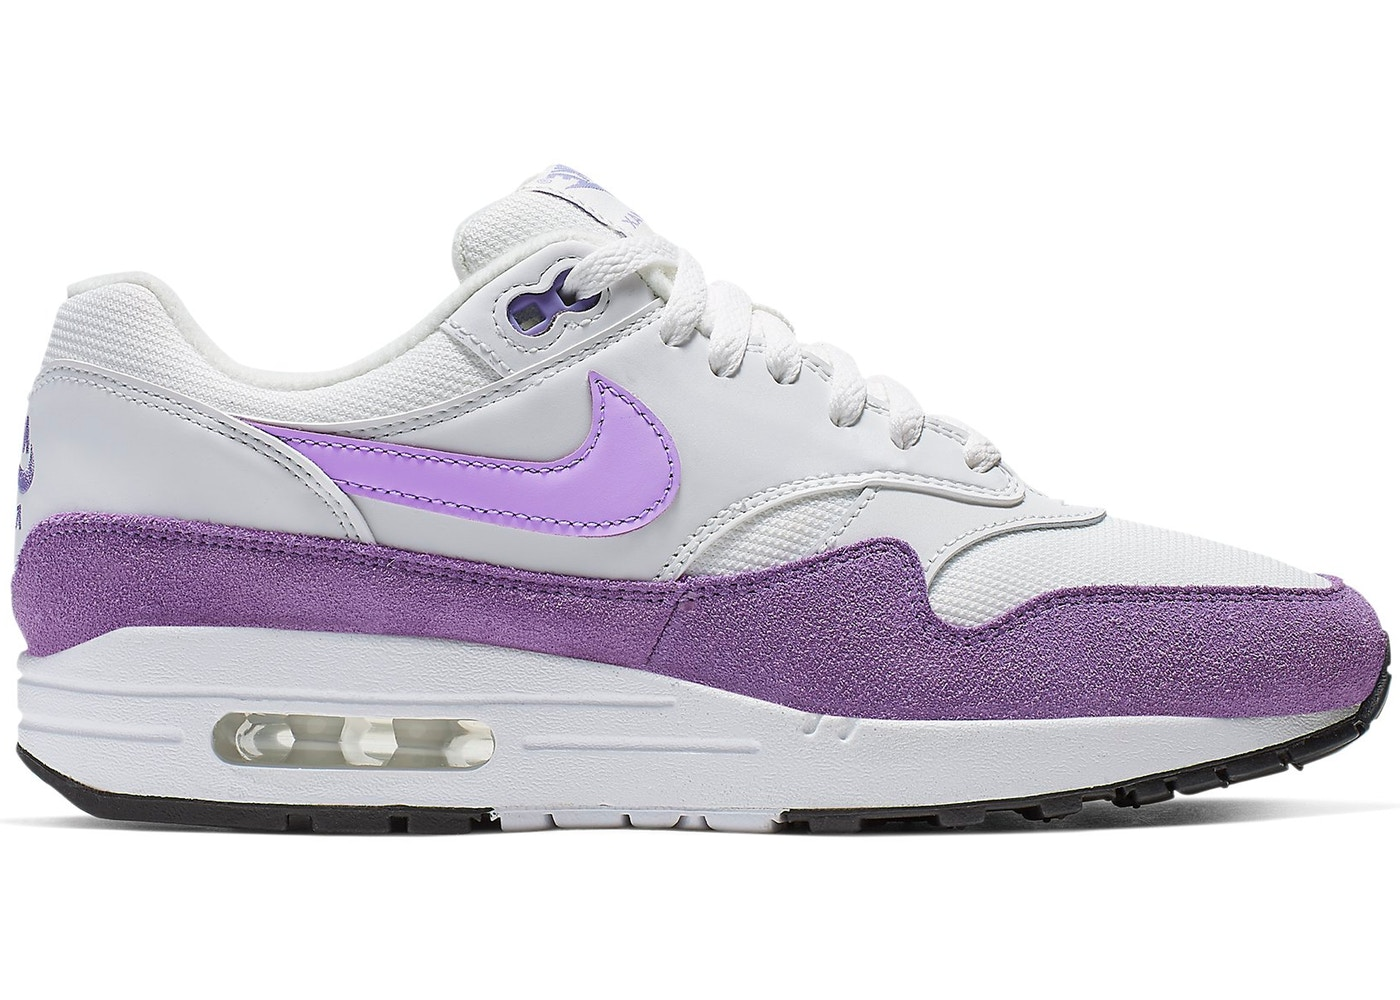 new high quality shades of uk store Air Max 1 Atomic Violet (W)